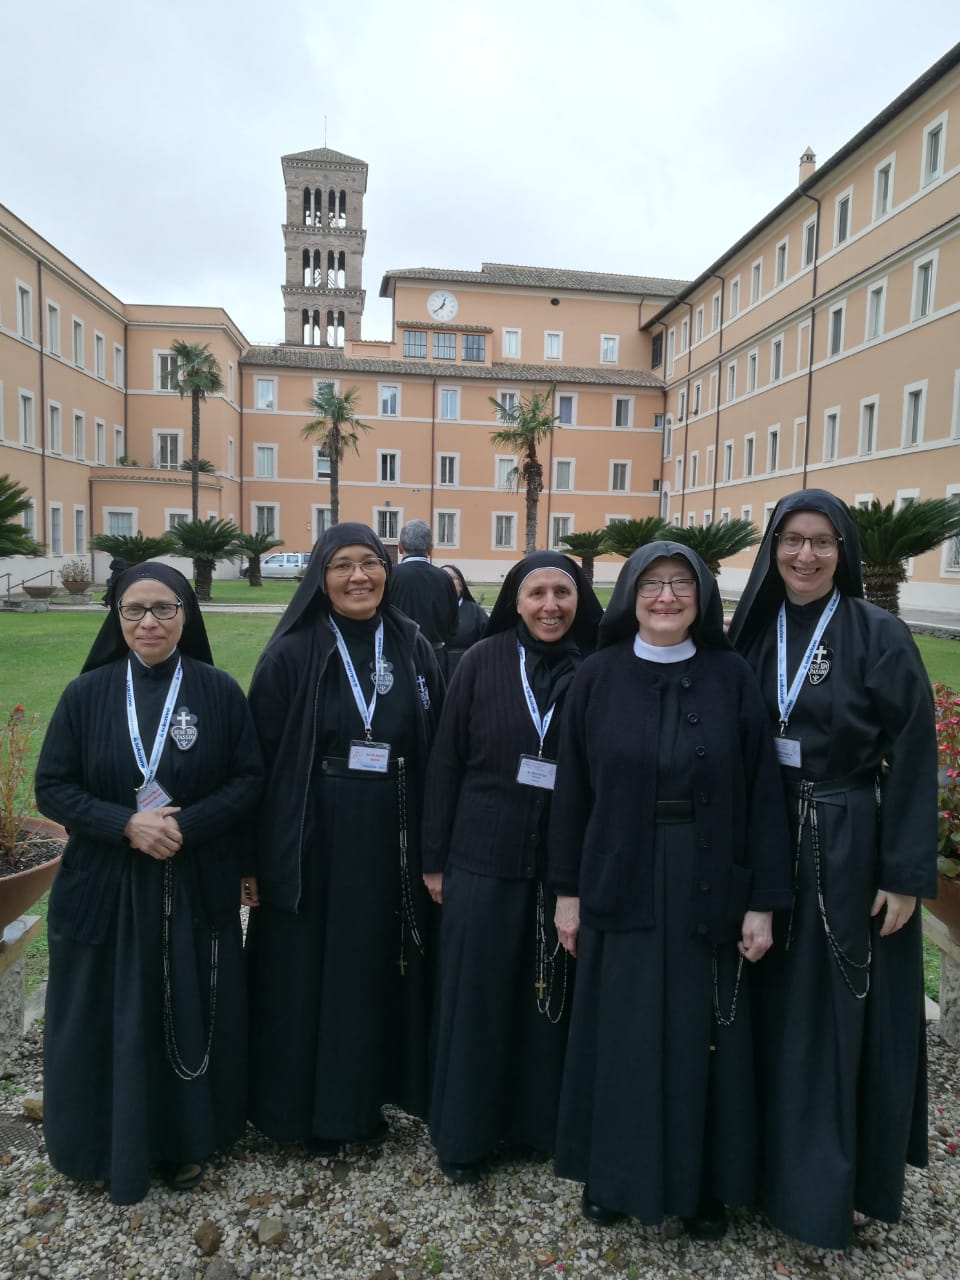 The General Council: Mother Ana Maria (Mexico), Sr. Martina (Italy), Mother Gertrude (France), Mother Catherine Marie (USA), and Sr. Daniela (Brazil) at Sts. John and Paul in Rome